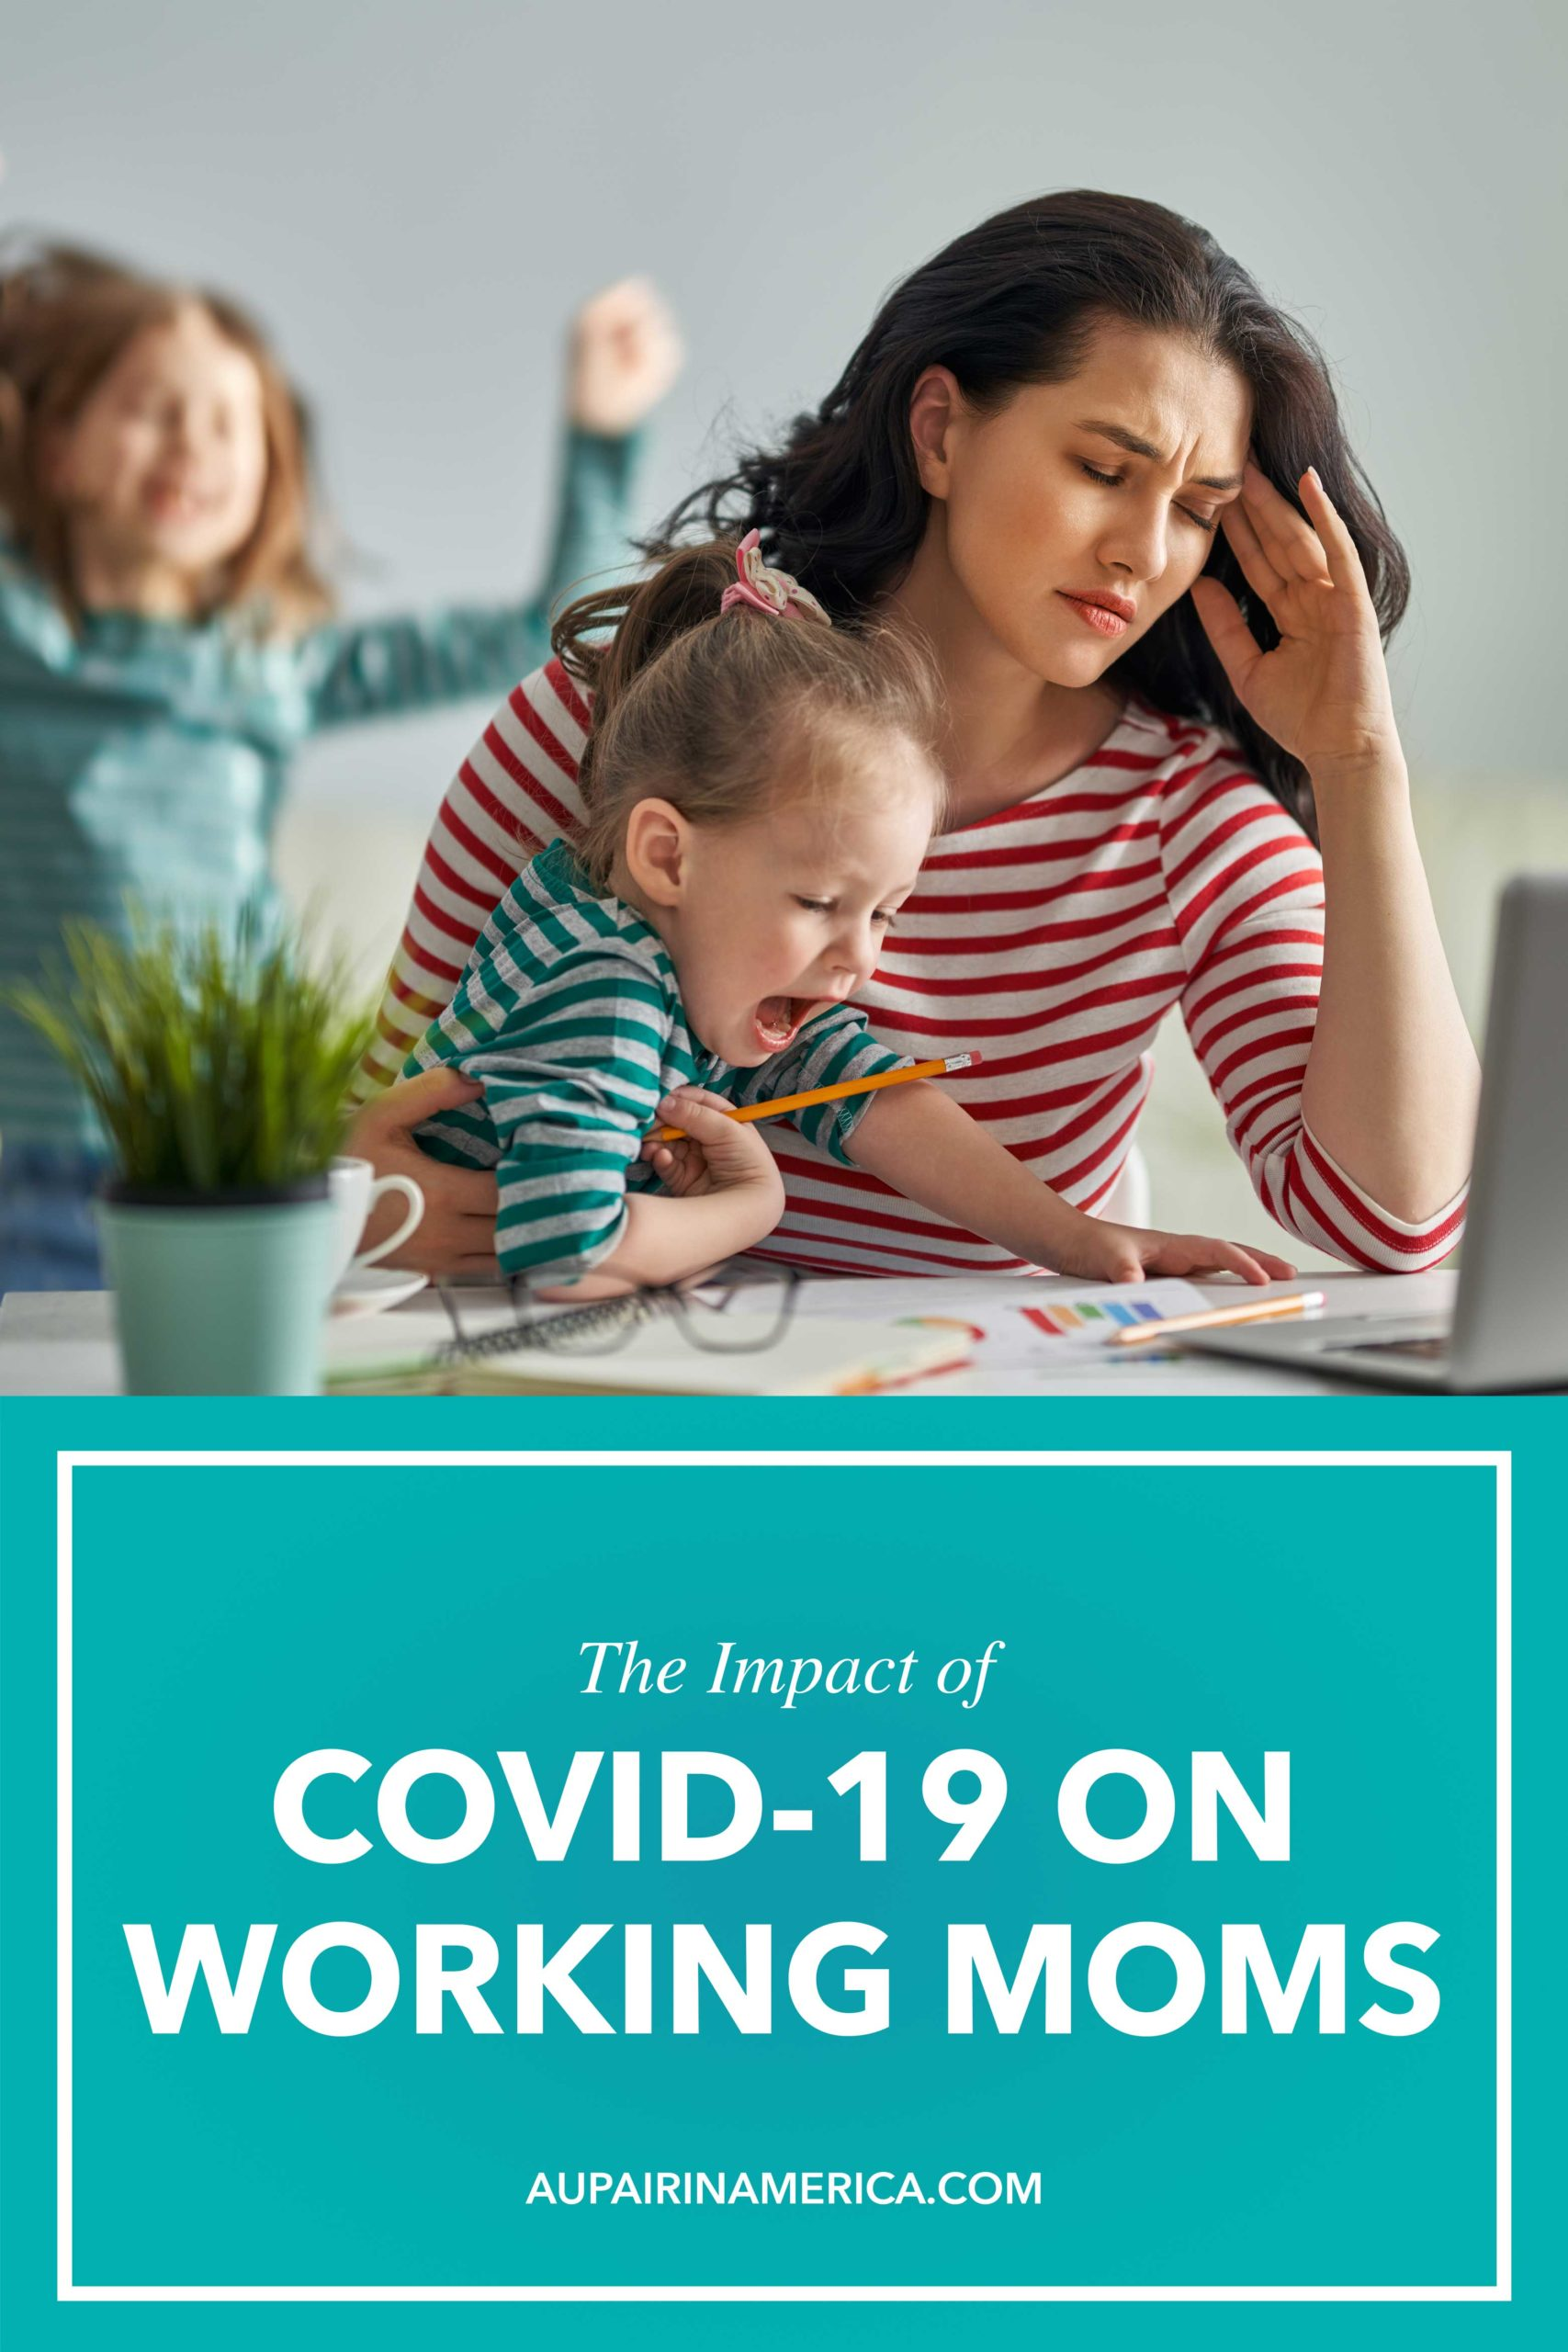 Working moms are feeling the impact of COVID-19. Learn more about how to support working parents during Coronavirus.